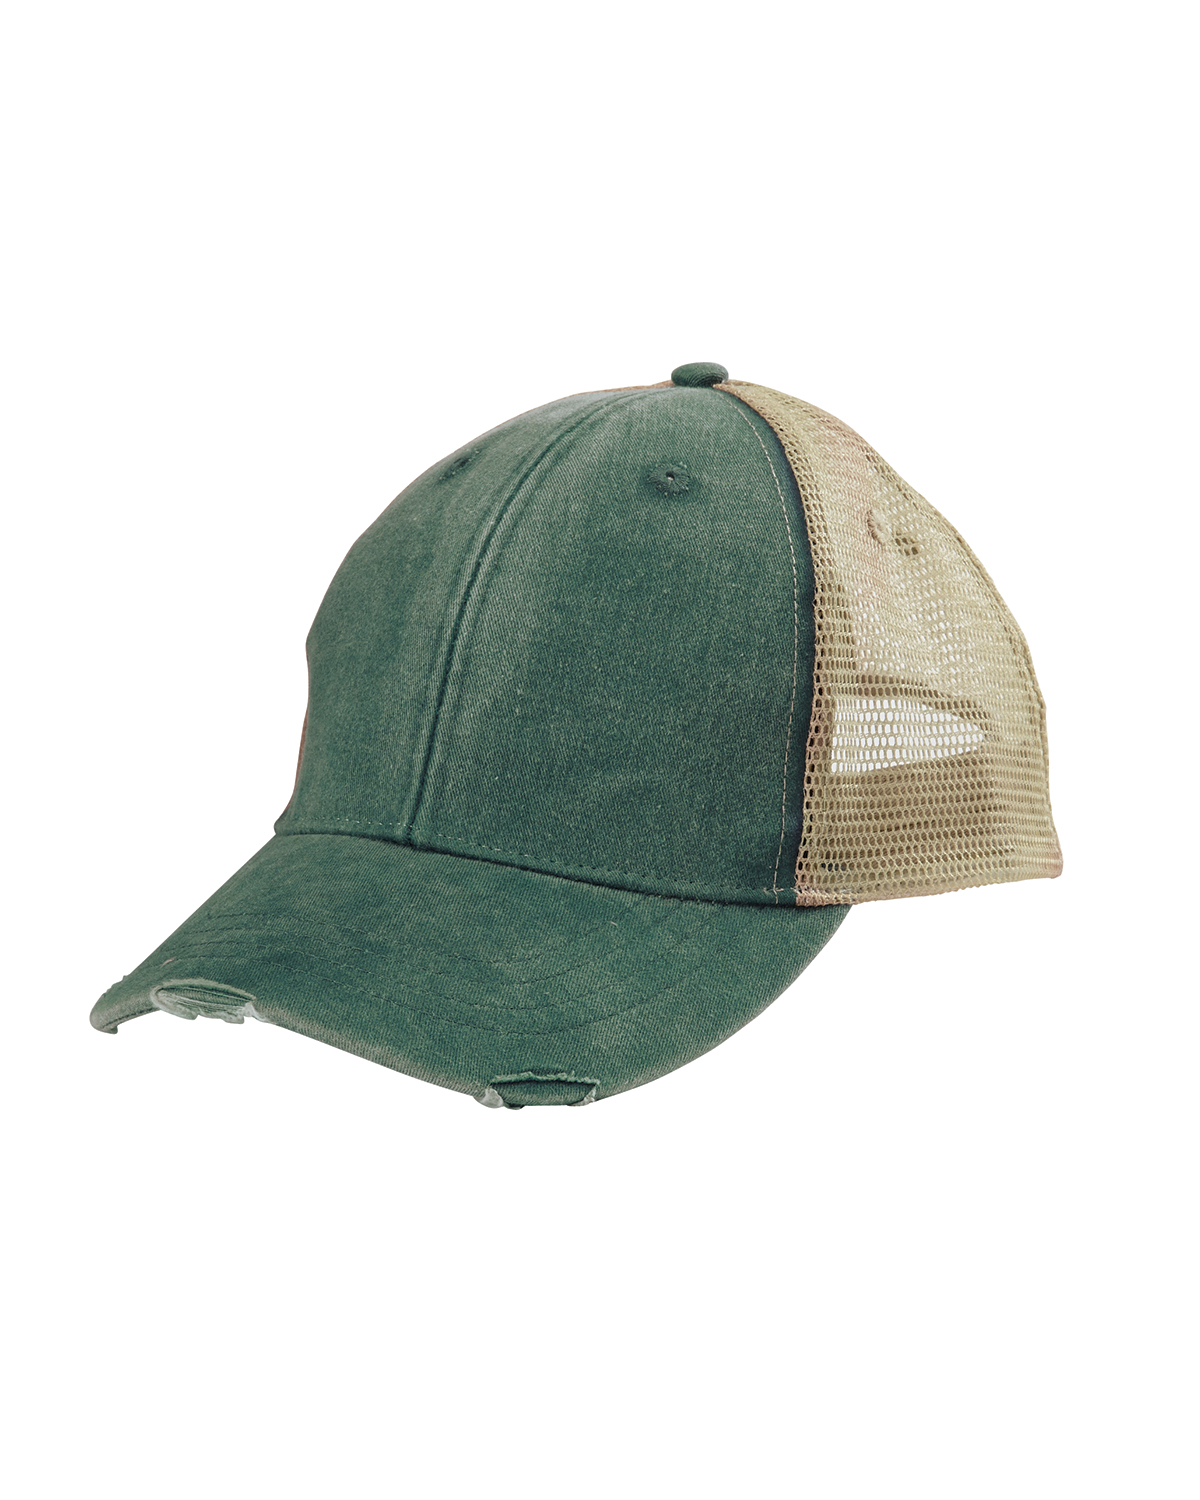 44761181b Adams Caps OL102 - 6-Panel Pigment-Dyed Distressed Trucker Cap $5.70 ...